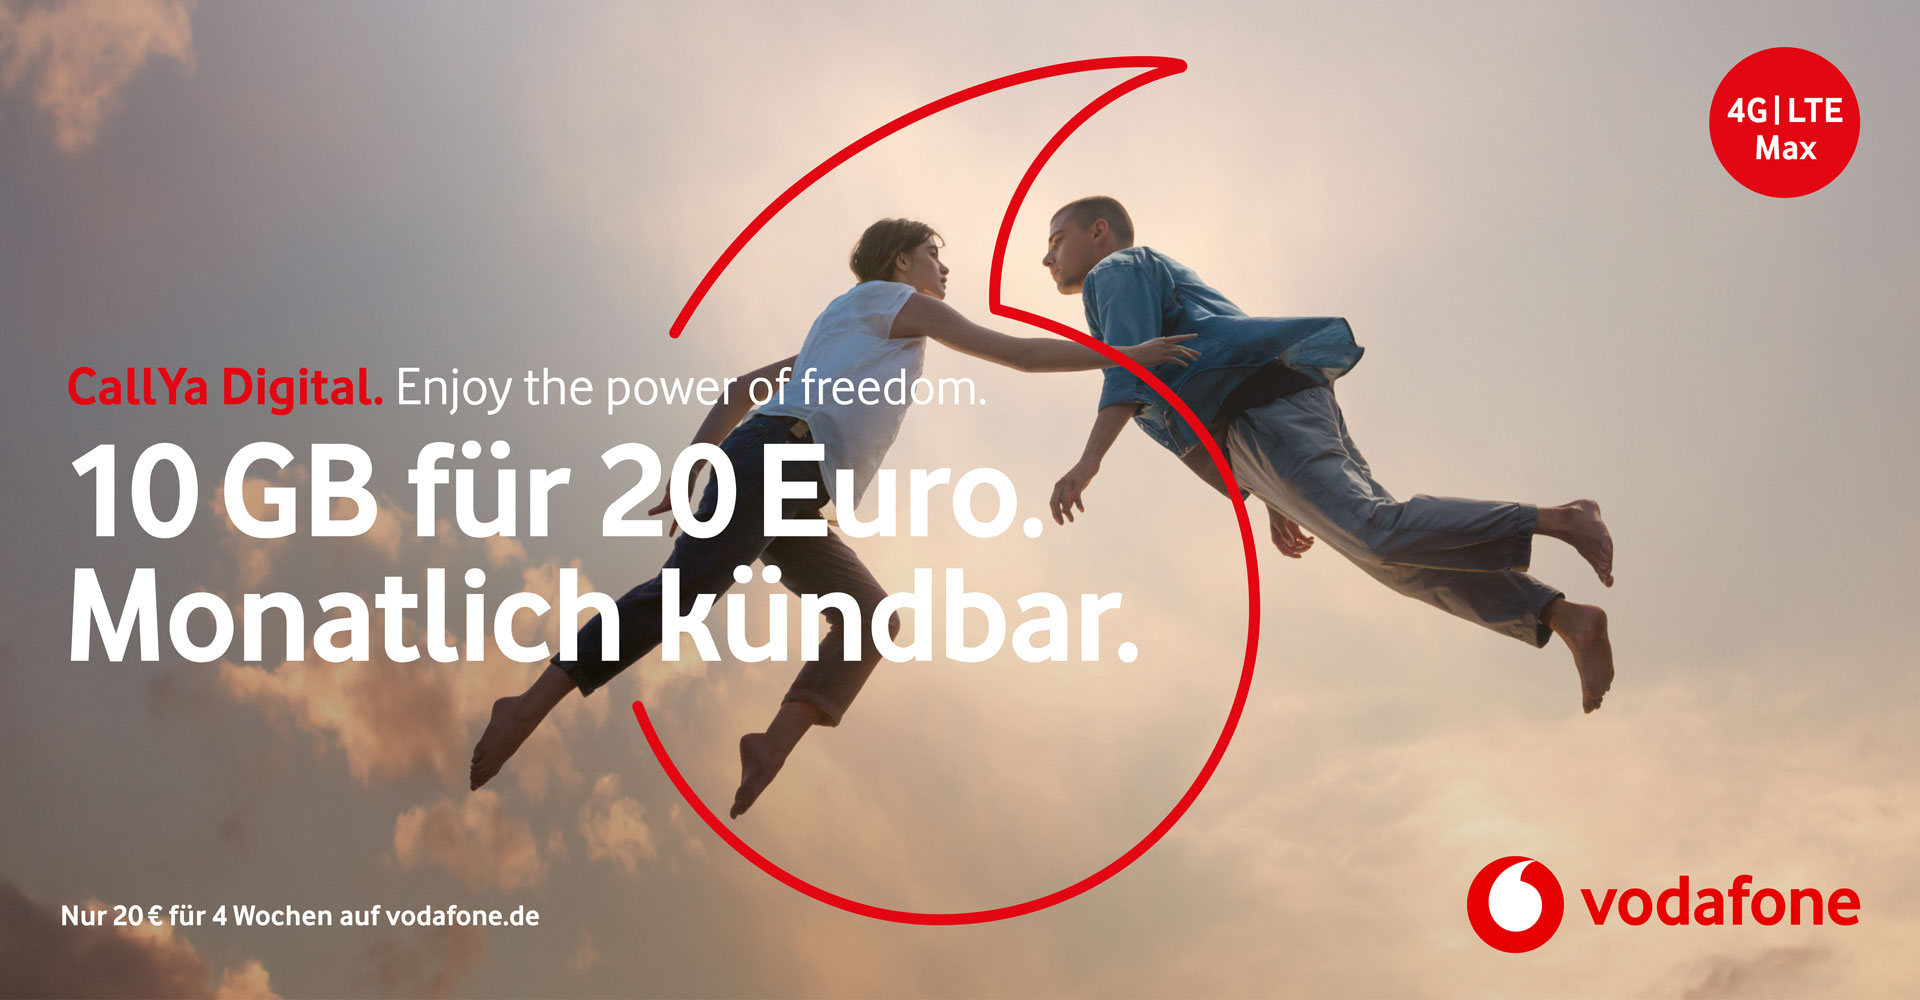 CallYa Digital-Tarif: Enjoy the power of freedom